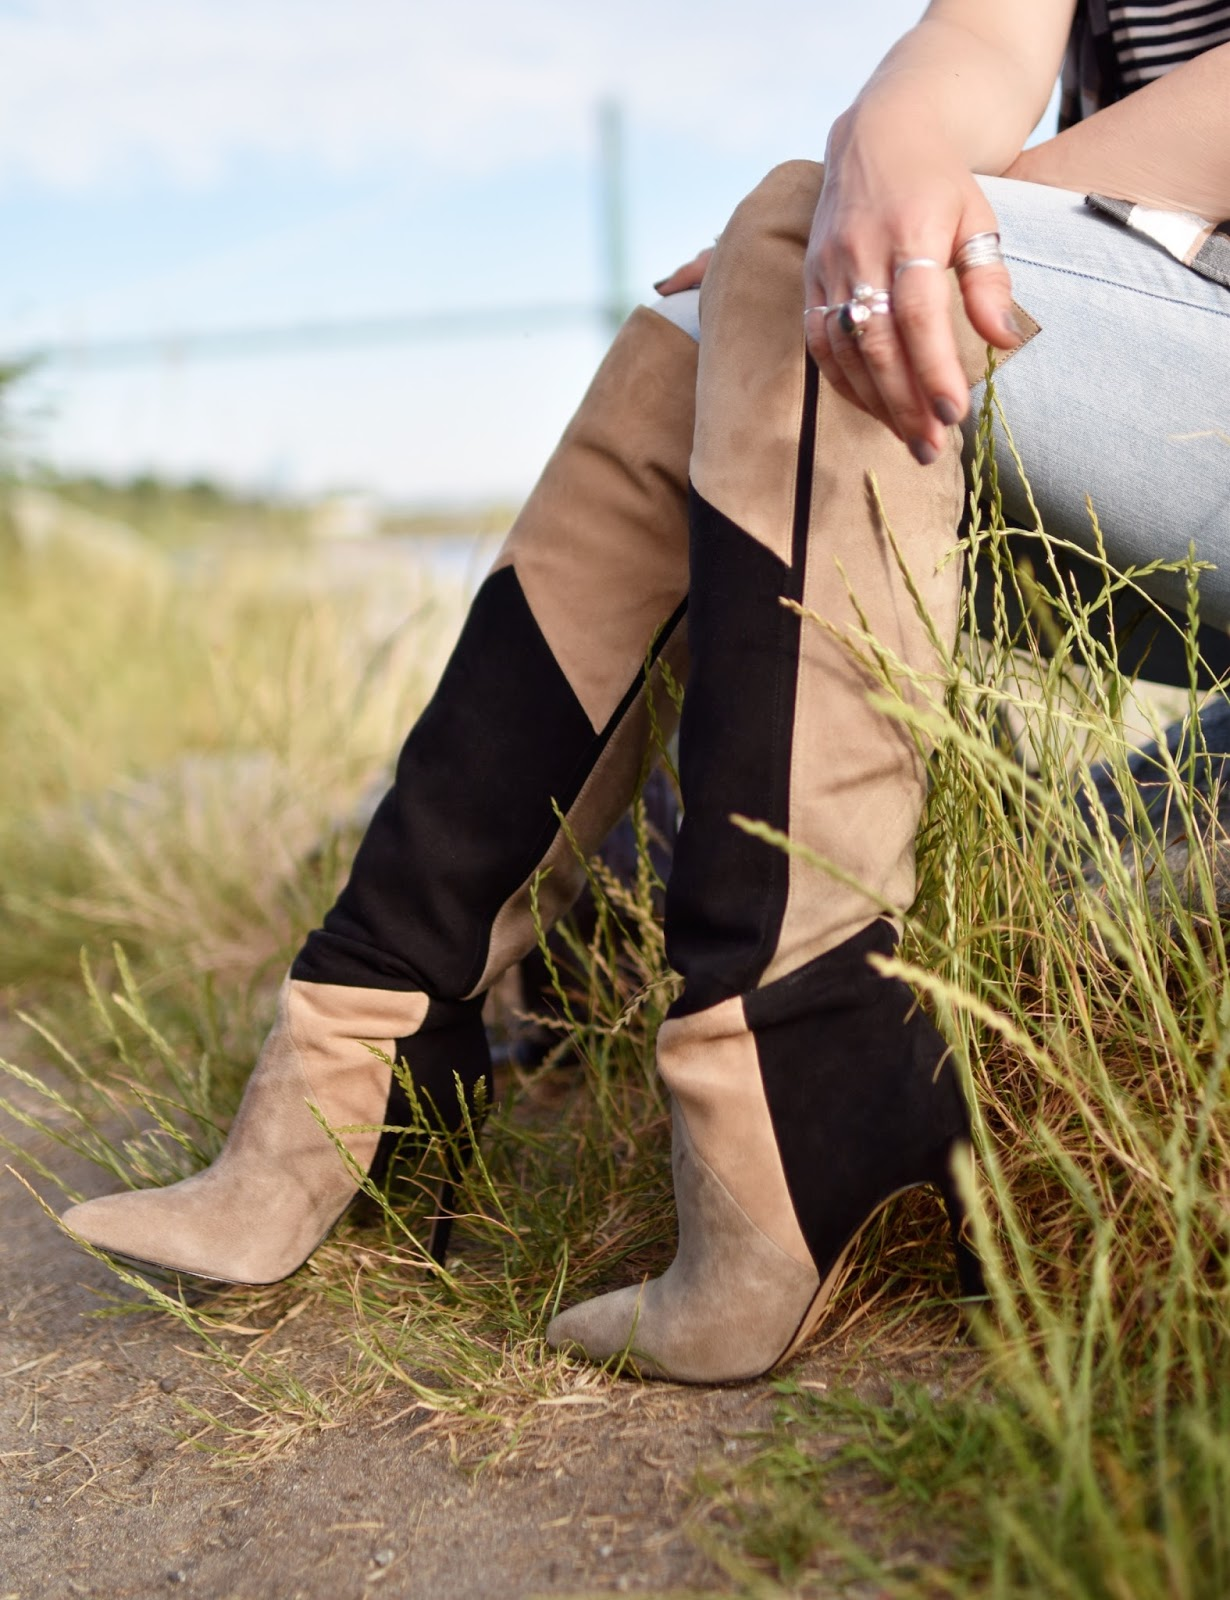 Monika Faulkner personal style inspiration - Aldo patchwork suede over-the-knee boots